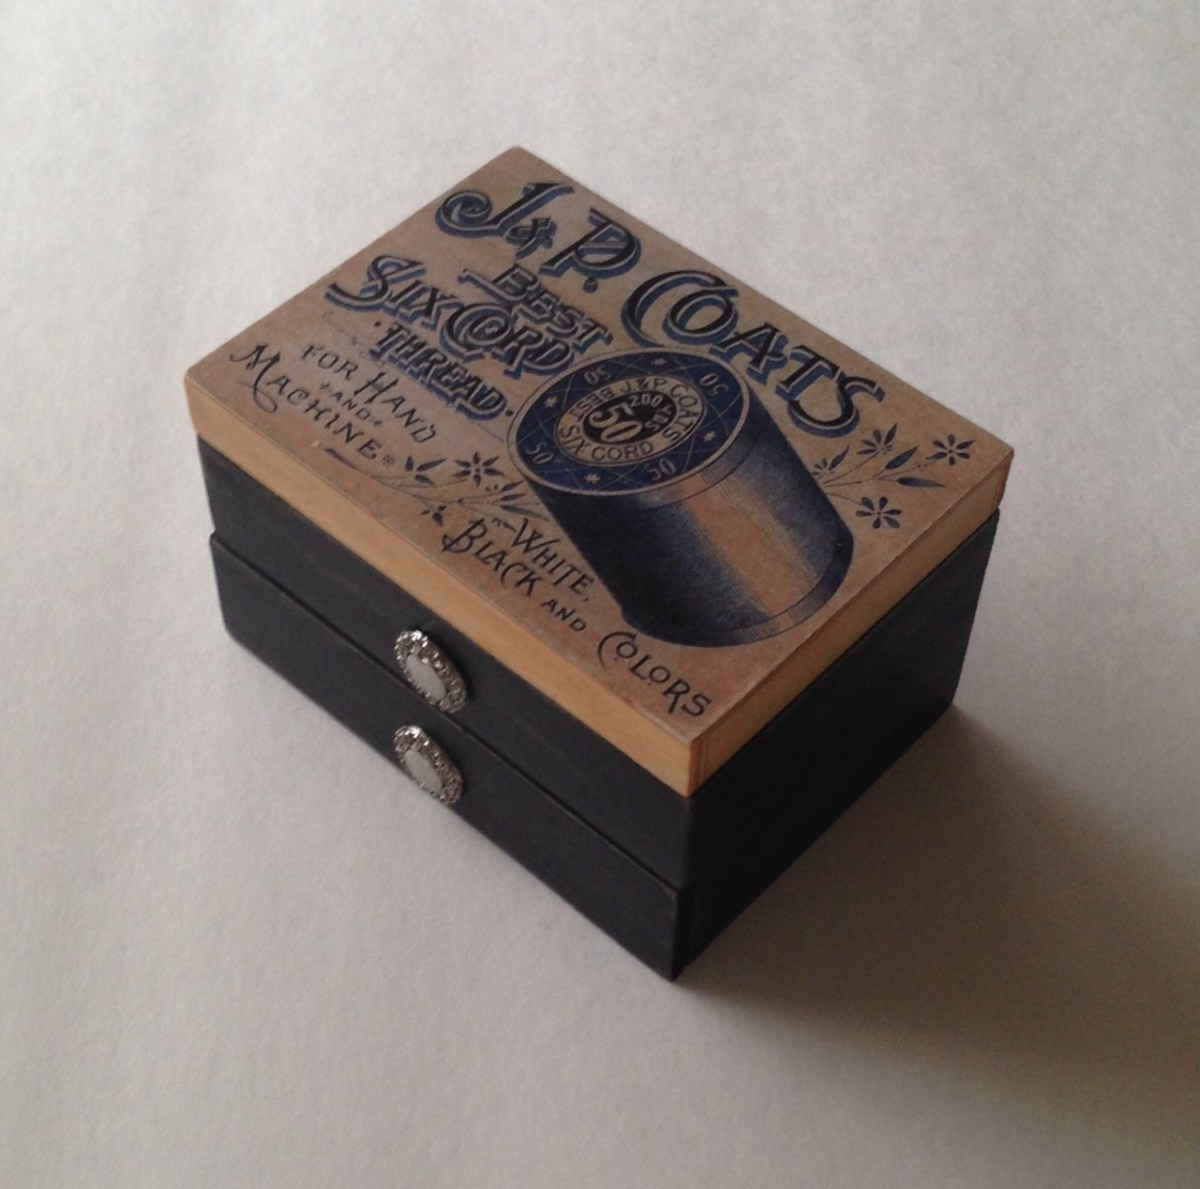 personalized sewing kit wooden keepsake box with pull out drawer  u2013 woody things  llc